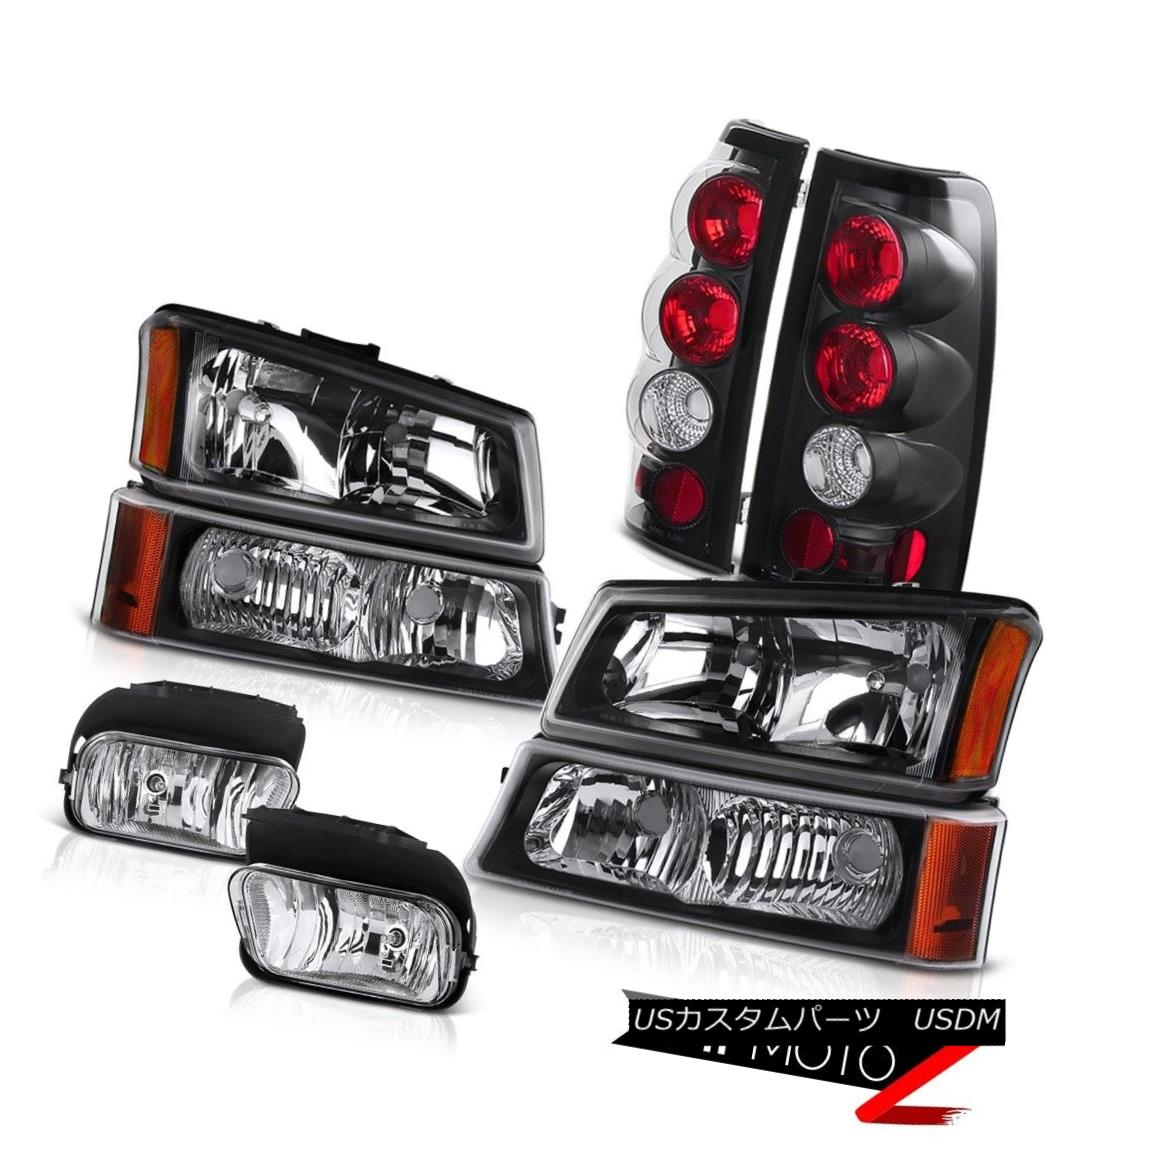 ヘッドライト 03 04 05 06 Silverado Black Diamond Headlight Crystal Bumper Tail Lights Foglamp 03 04 05 06 Silverado Black DiamondヘッドライトクリスタルバンパーテールライトFoglamp